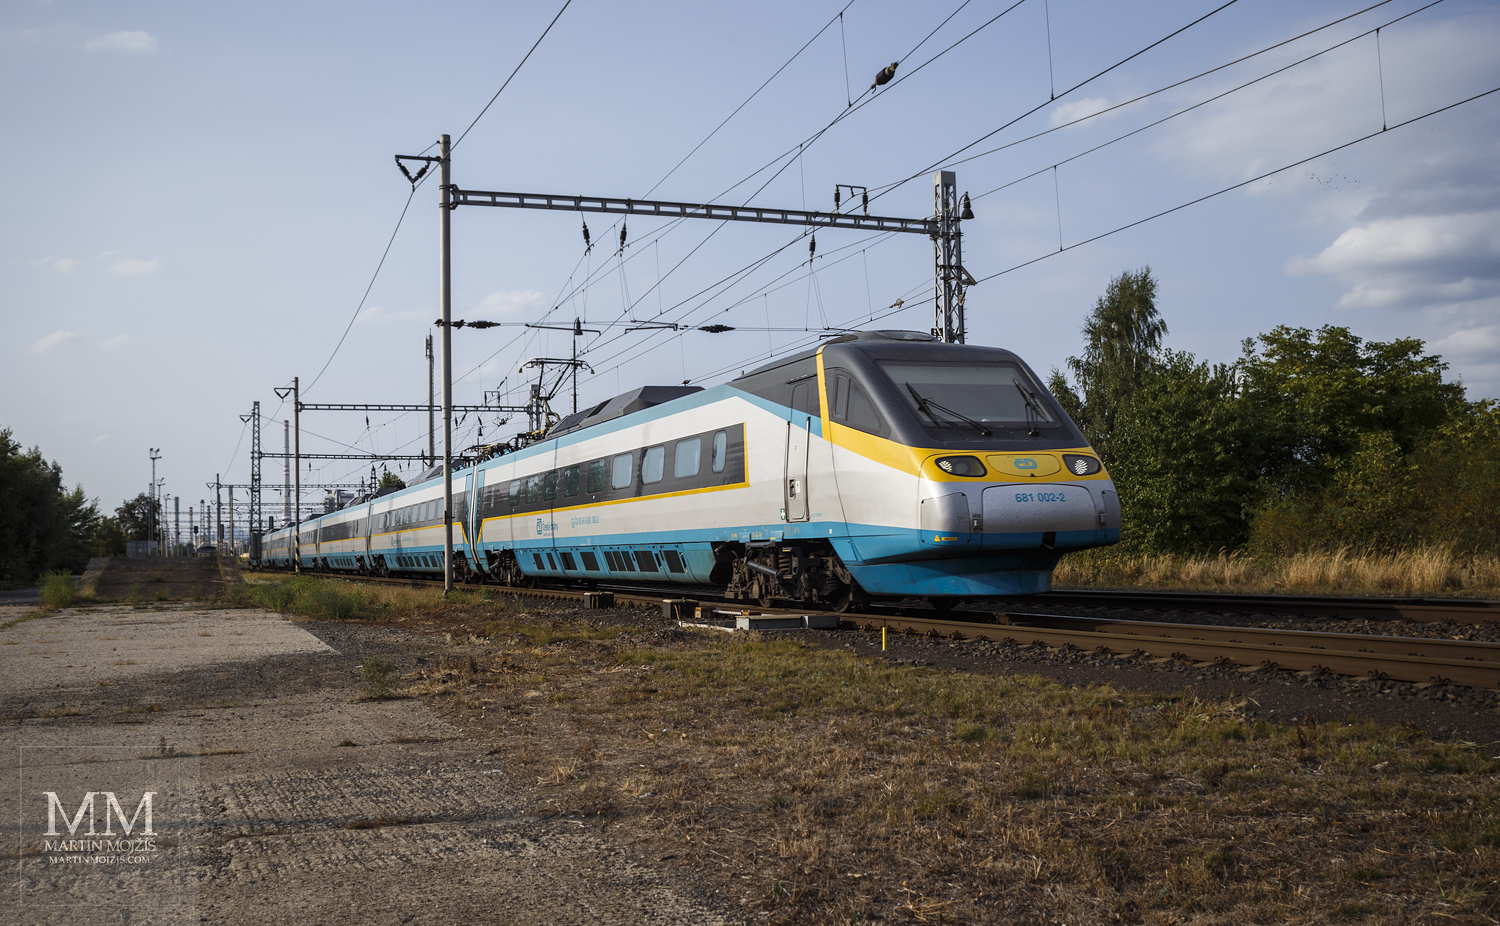 Pendolino in North Bohemia? Photographic wanderings.